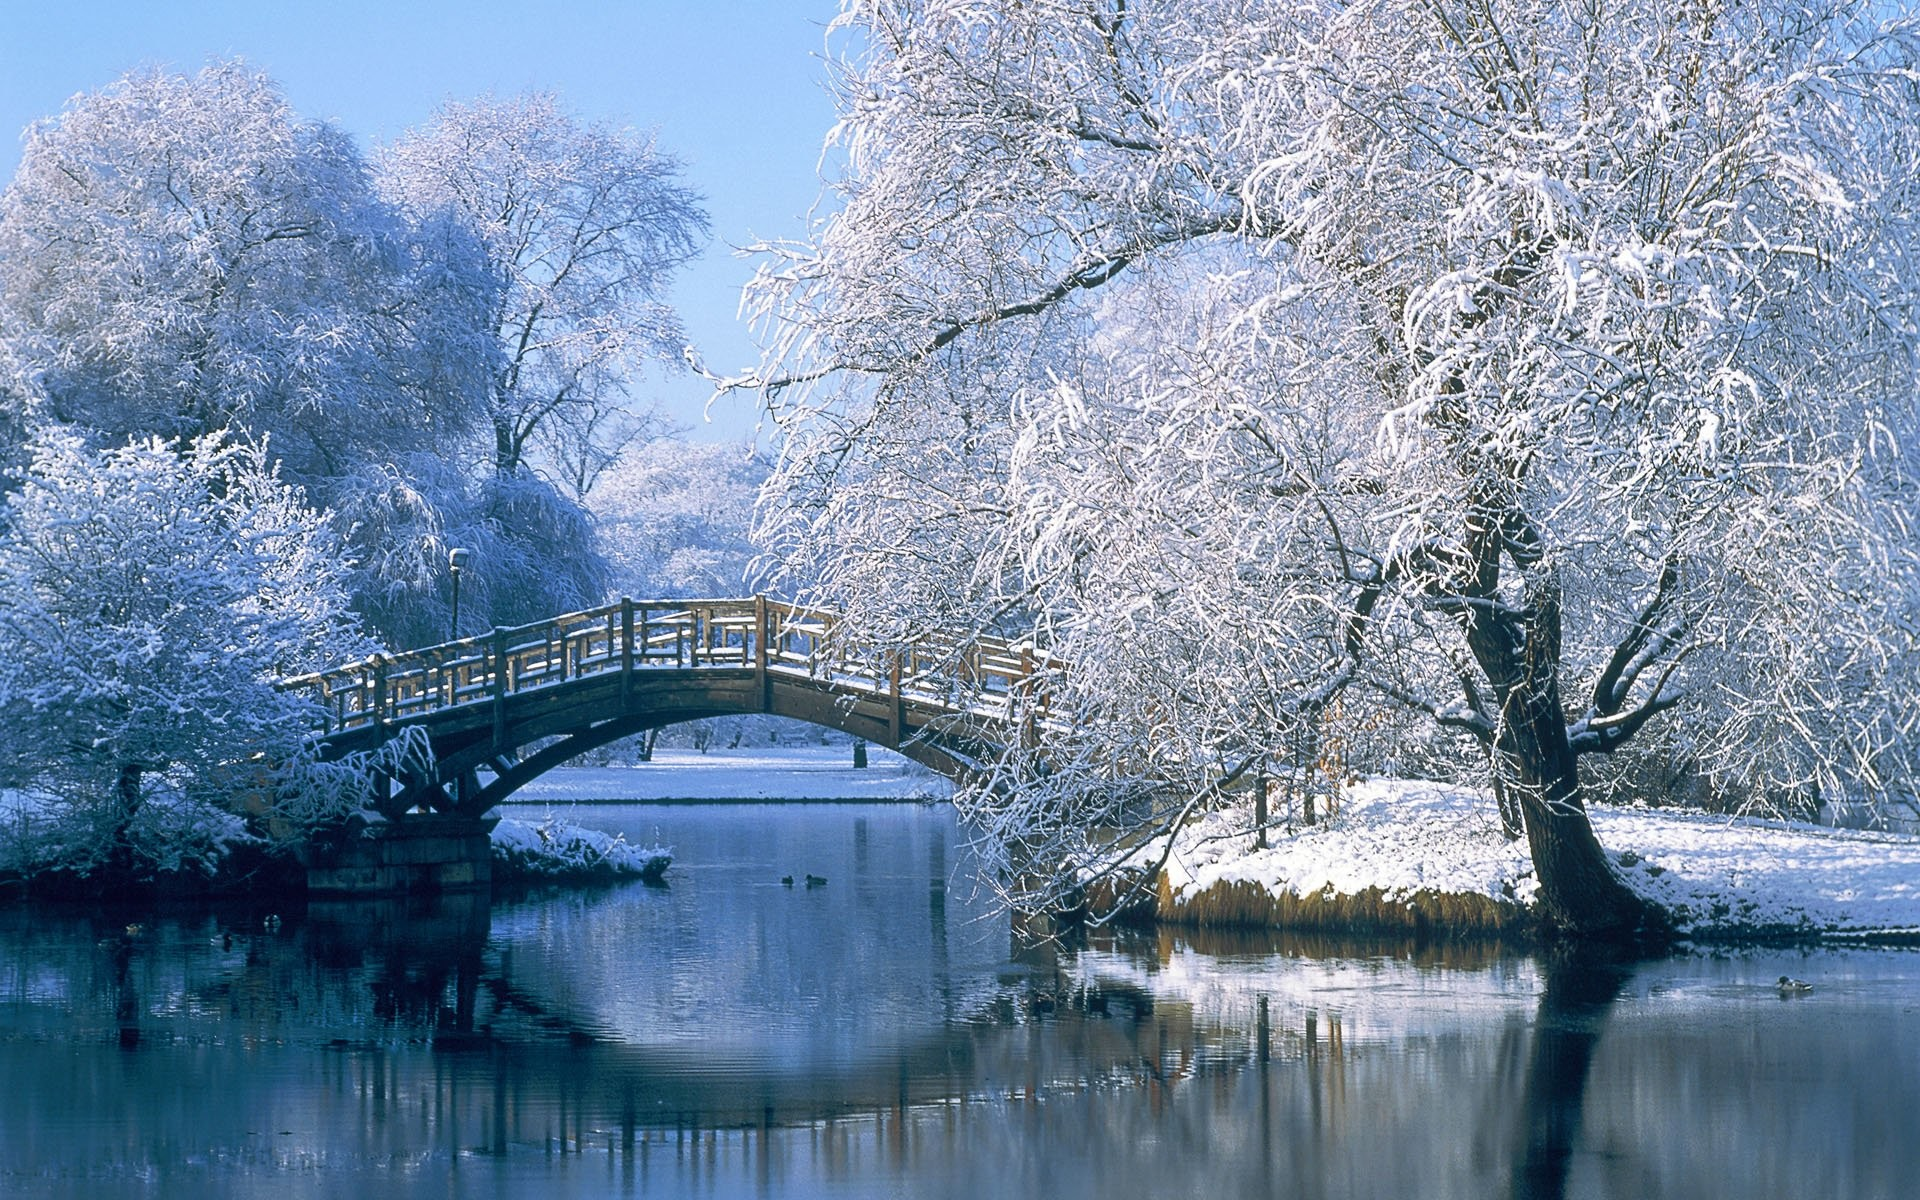 1920x1200 Photography - Winter Landscape Pond Water Bridge Tree Reflection Snow  Wallpaper